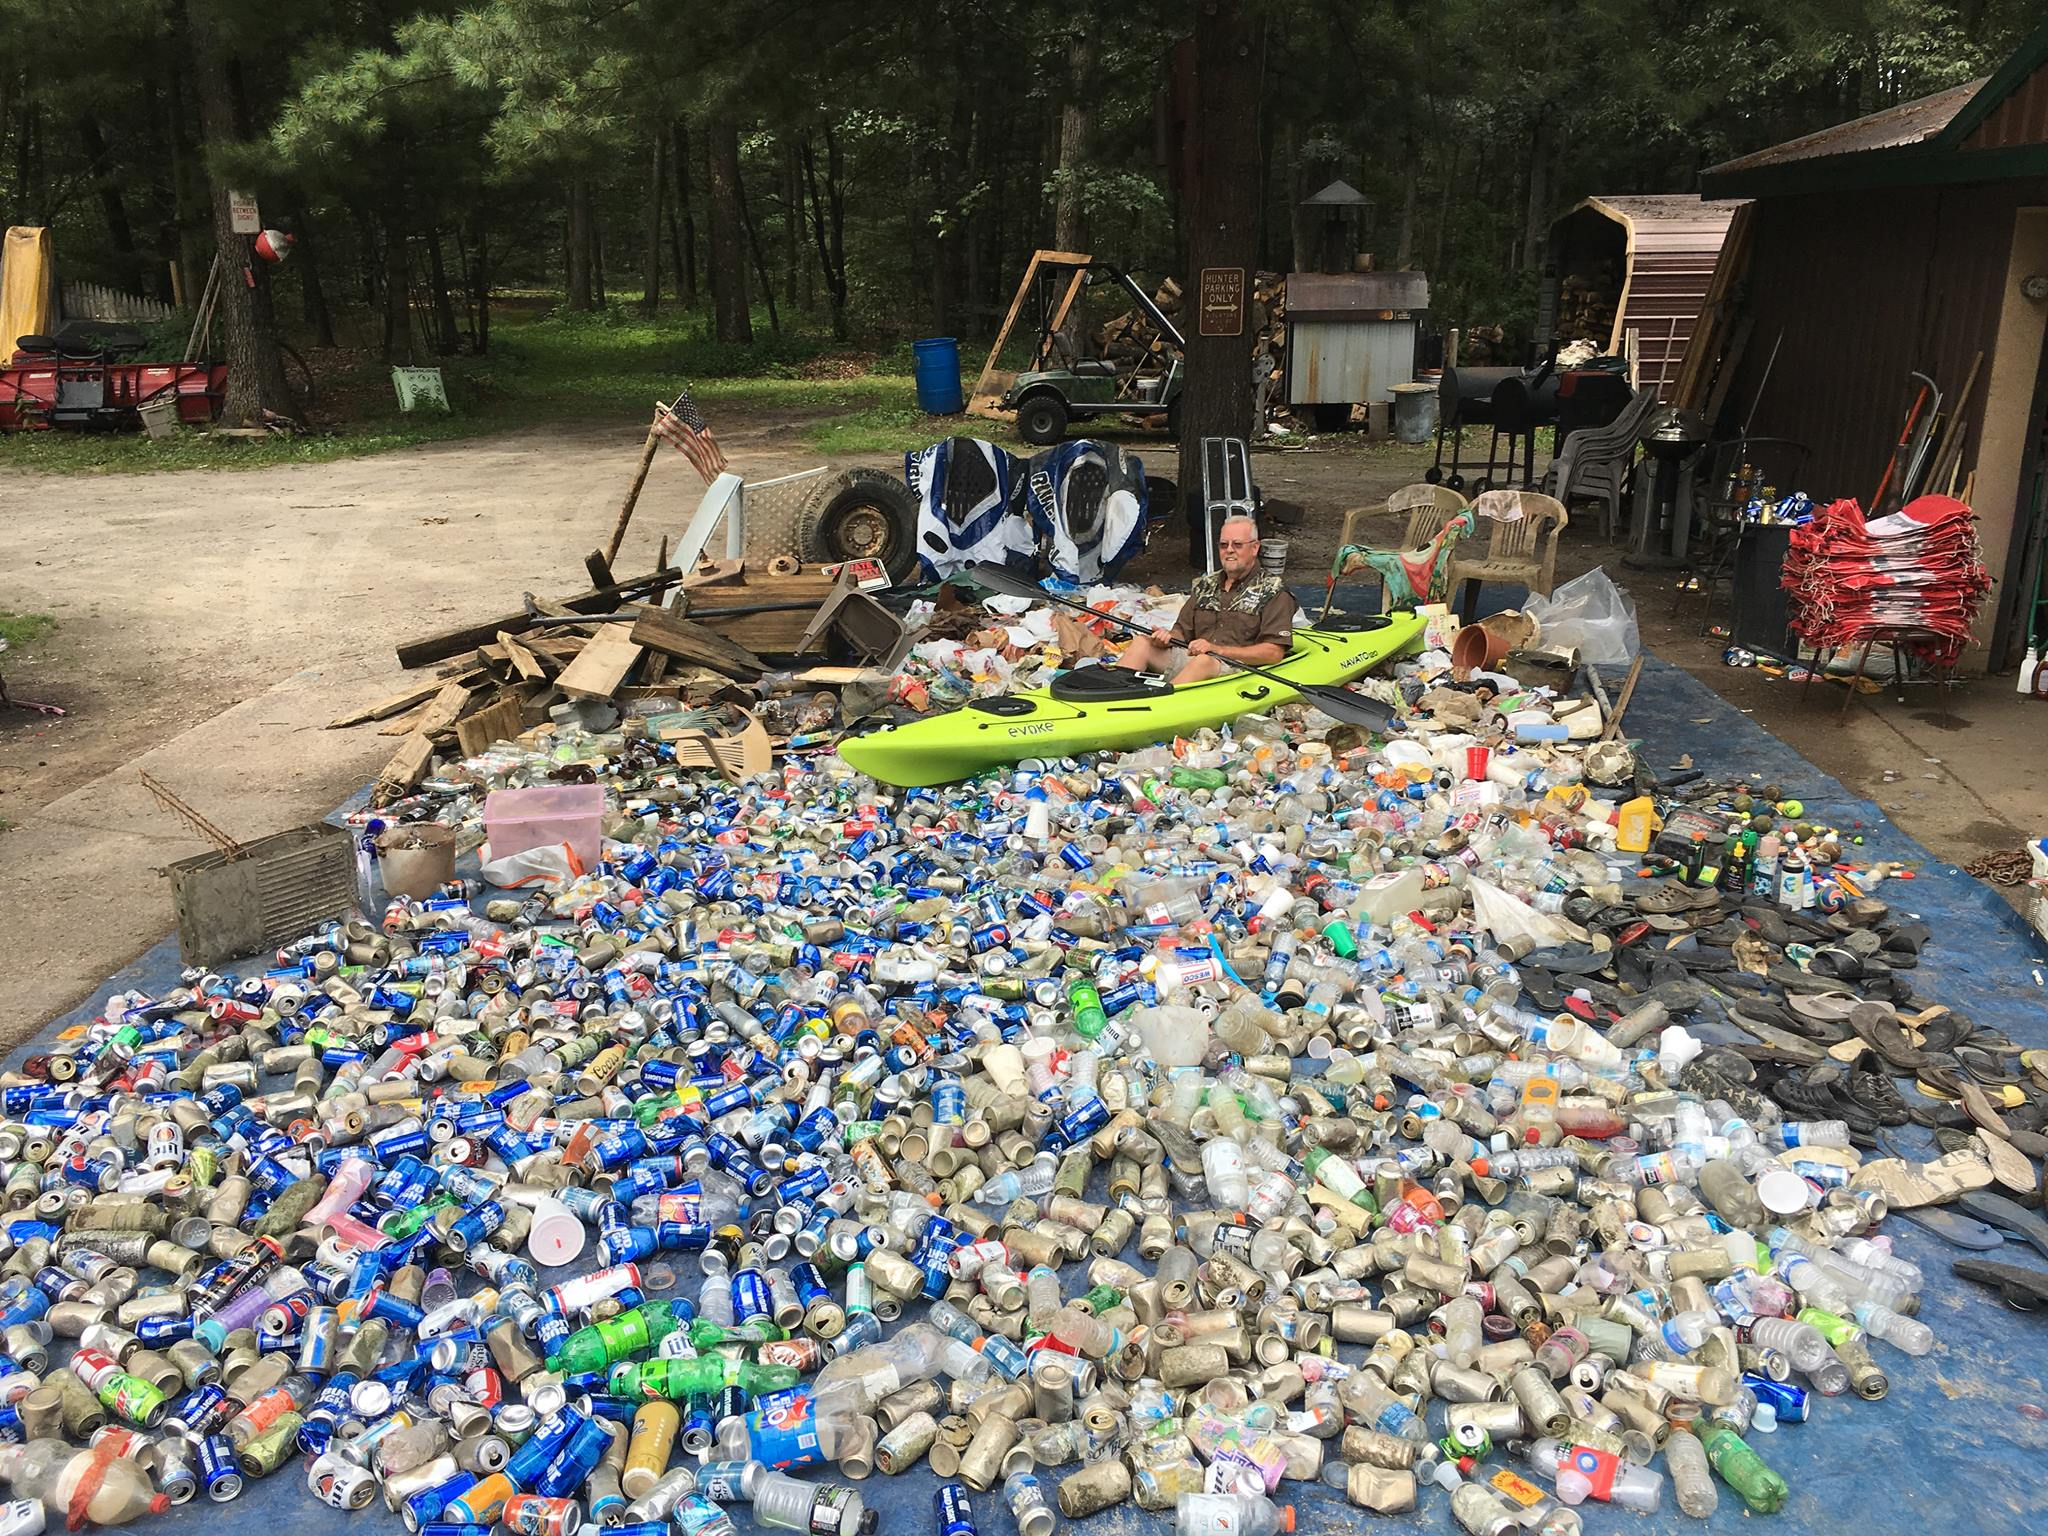 An annual cleanup effort on the Muskegon River brought in a large cache of garbage that other people left behind.Photo Courtesy: Muskegon River Clean-up Co. LLC